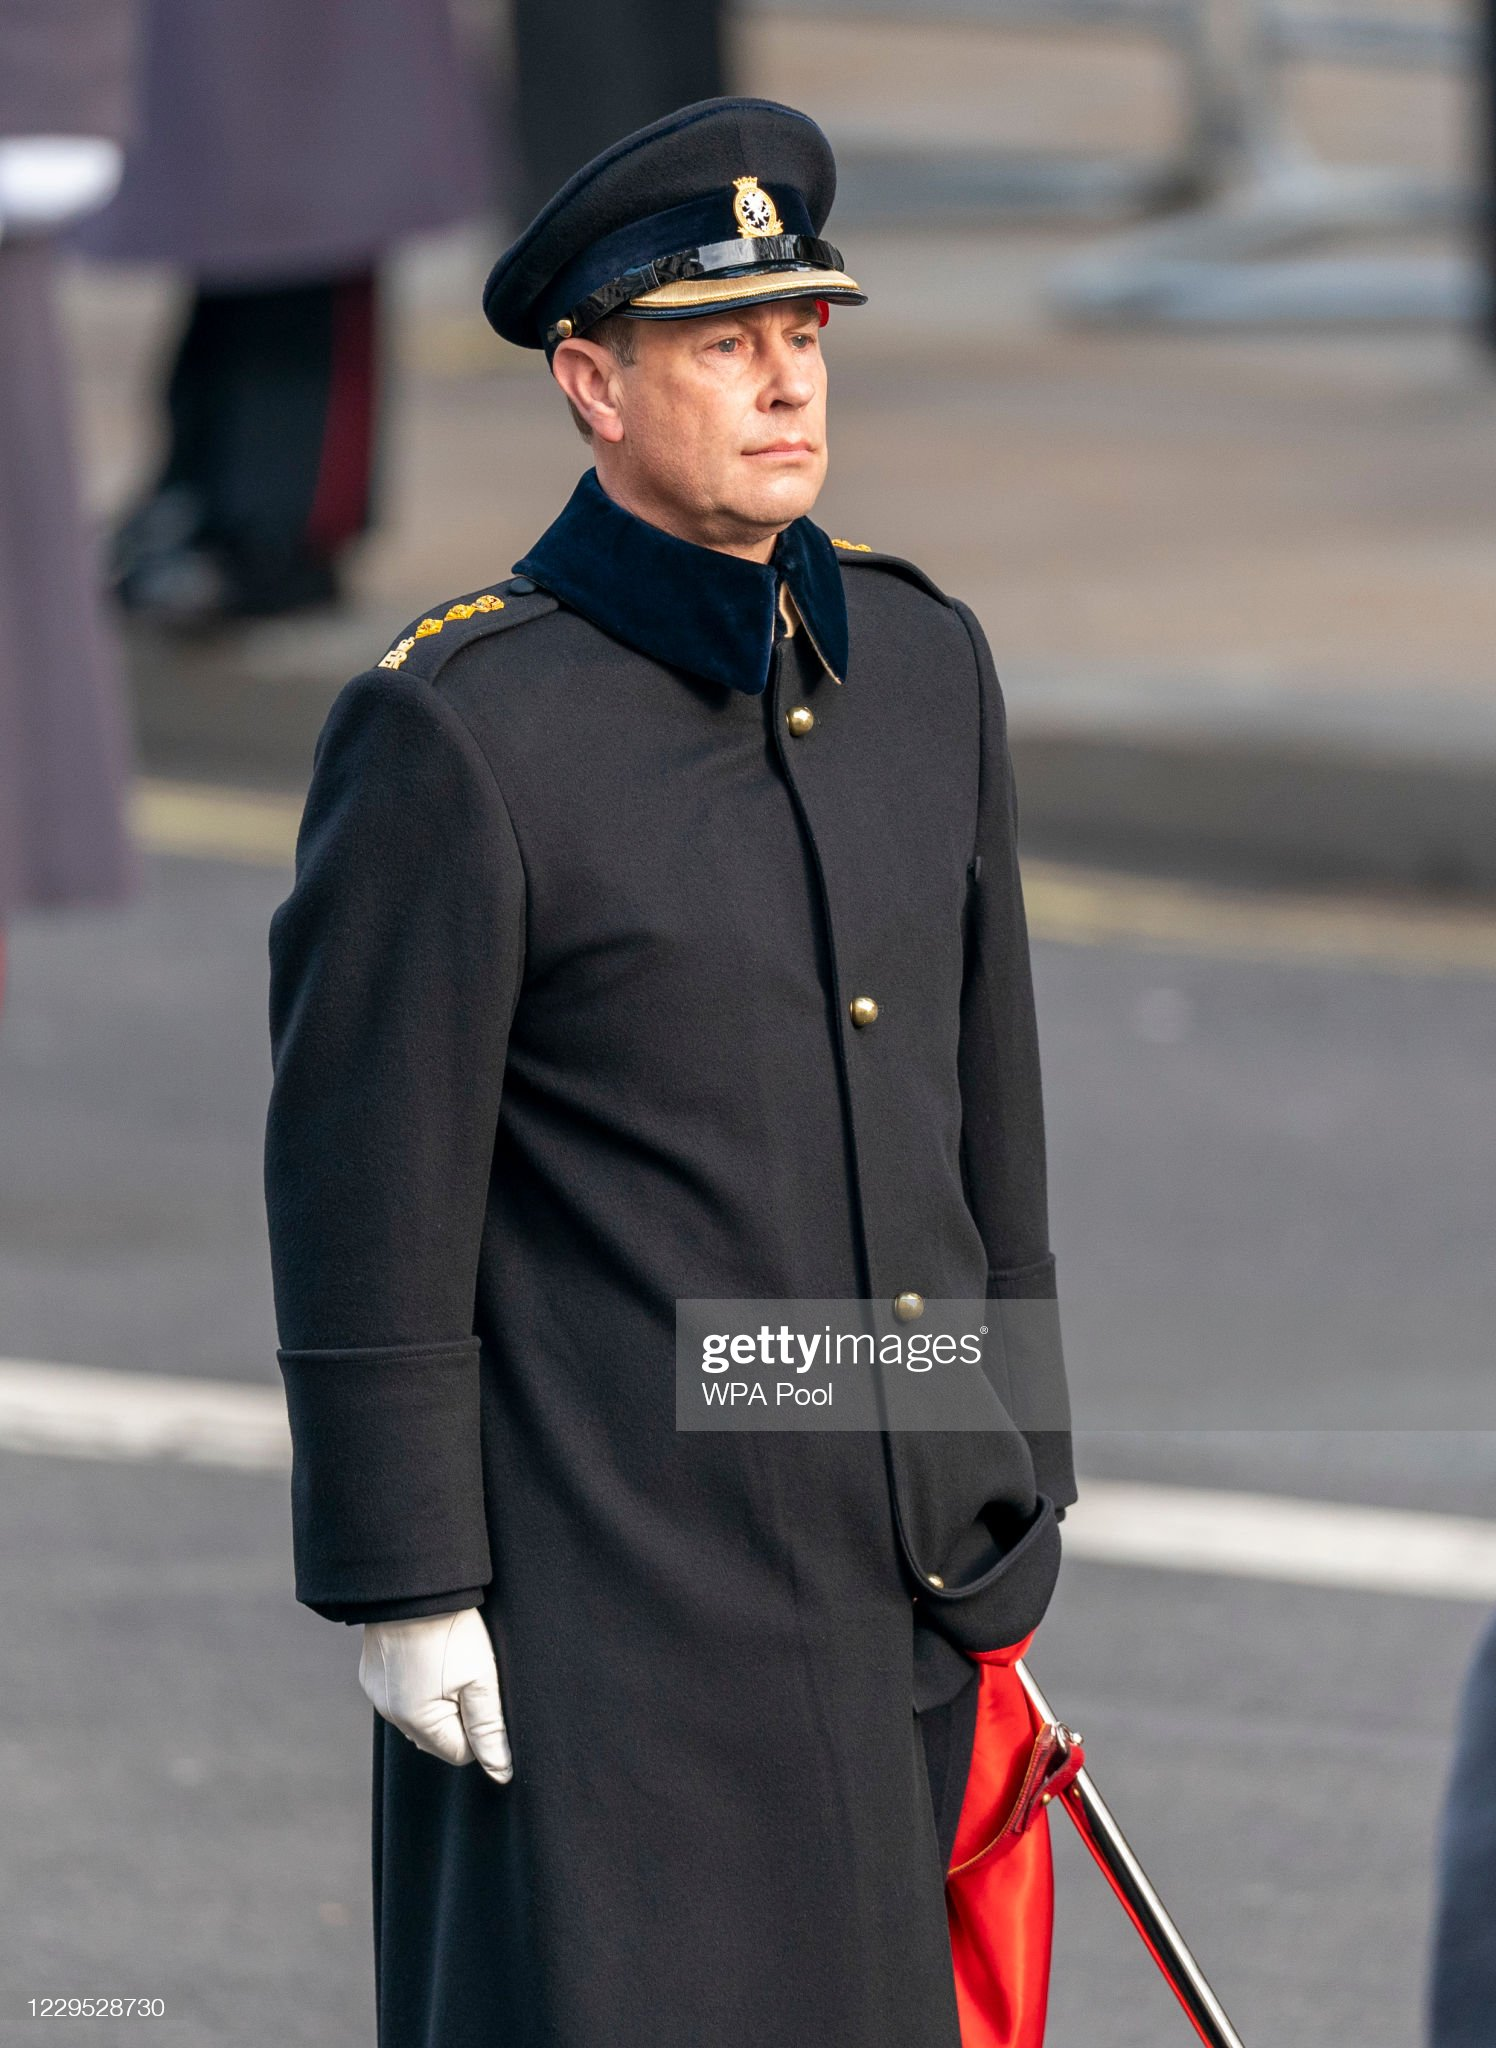 https://media.gettyimages.com/photos/prince-edward-attends-the-national-service-of-remembrance-at-the-in-picture-id1229528730?s=2048x2048